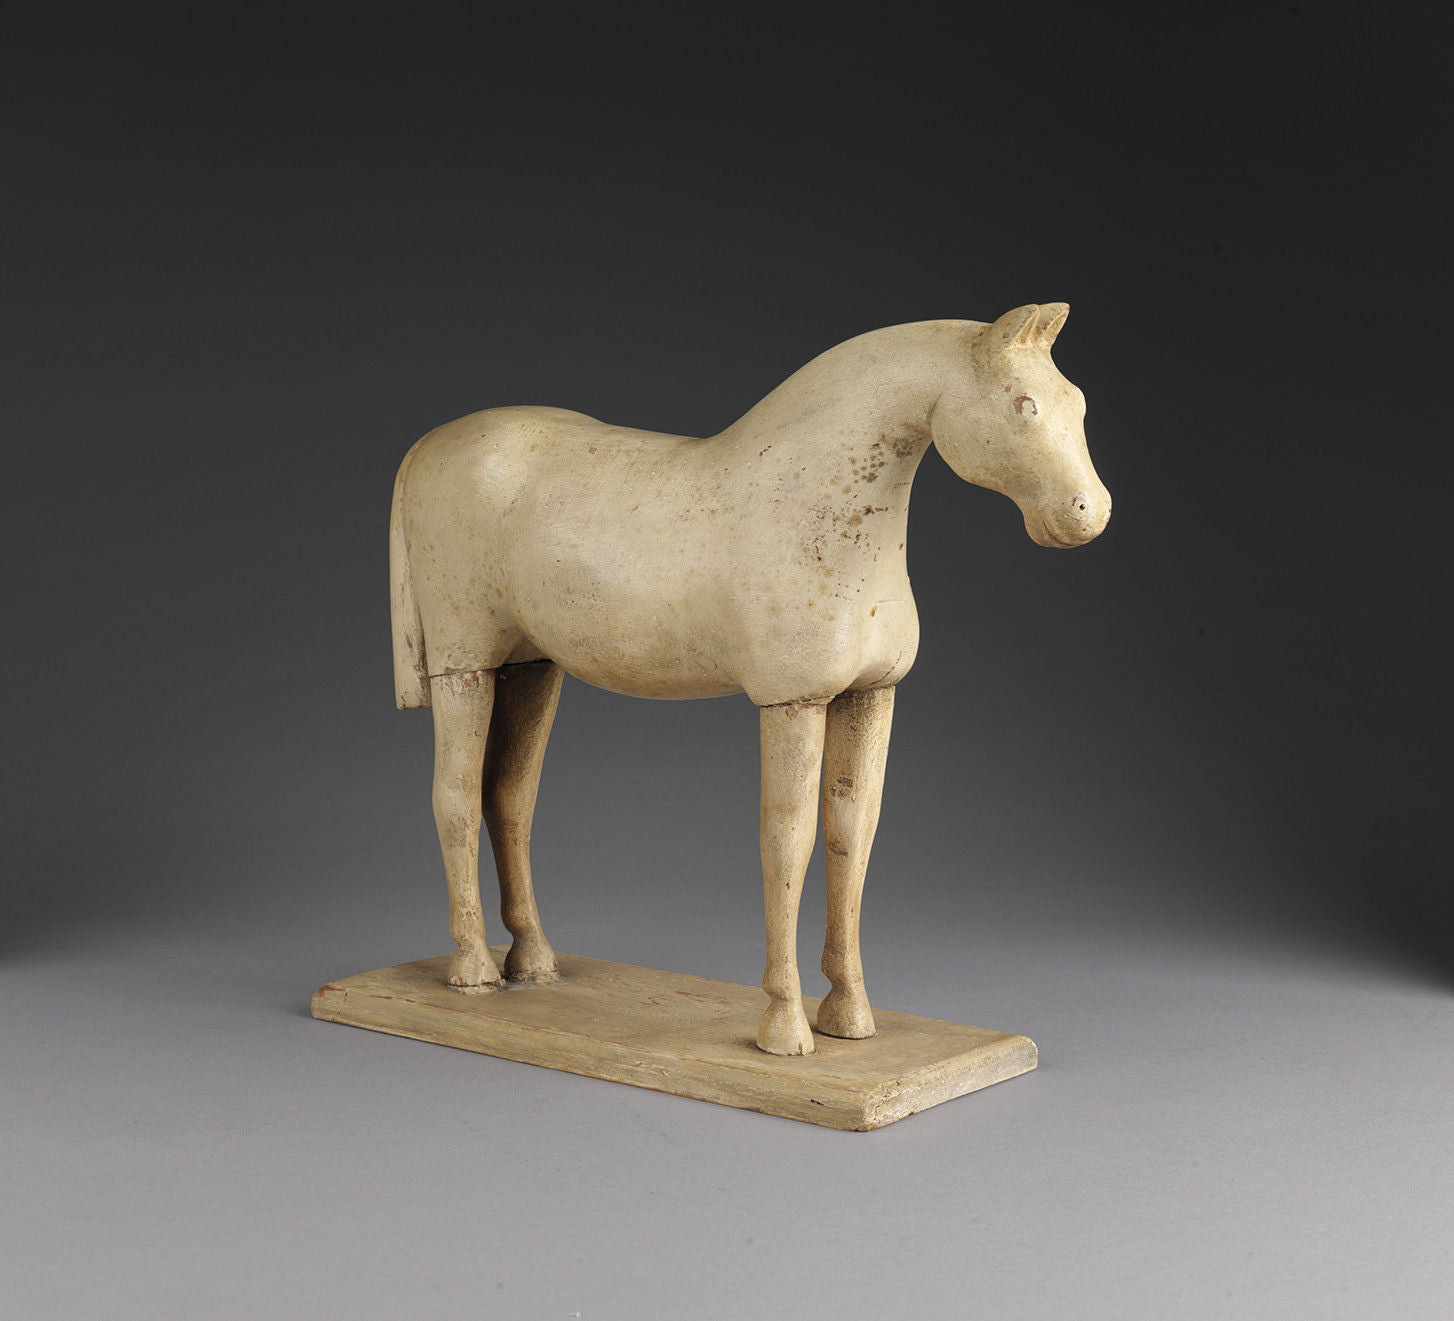 Powerful Folk Art Sculpture of a Standing Horse